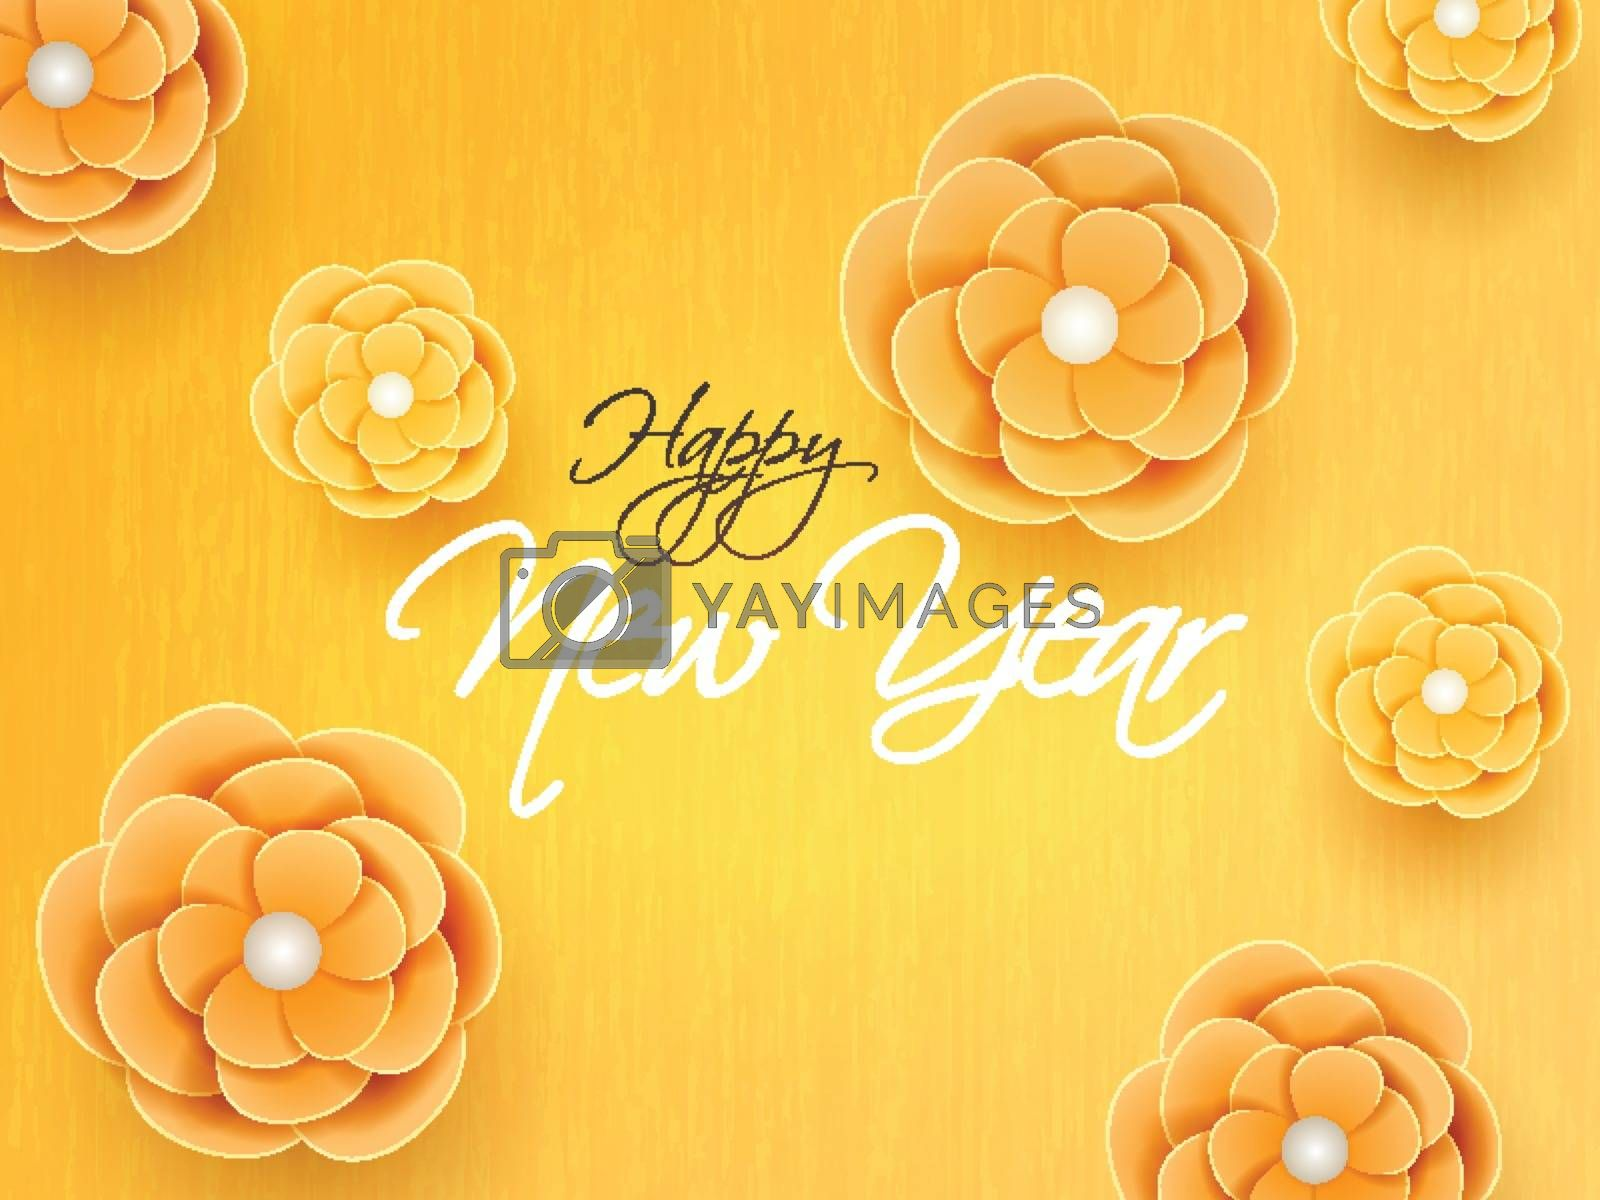 Happy New Year background decorated with flowers in yellow color.